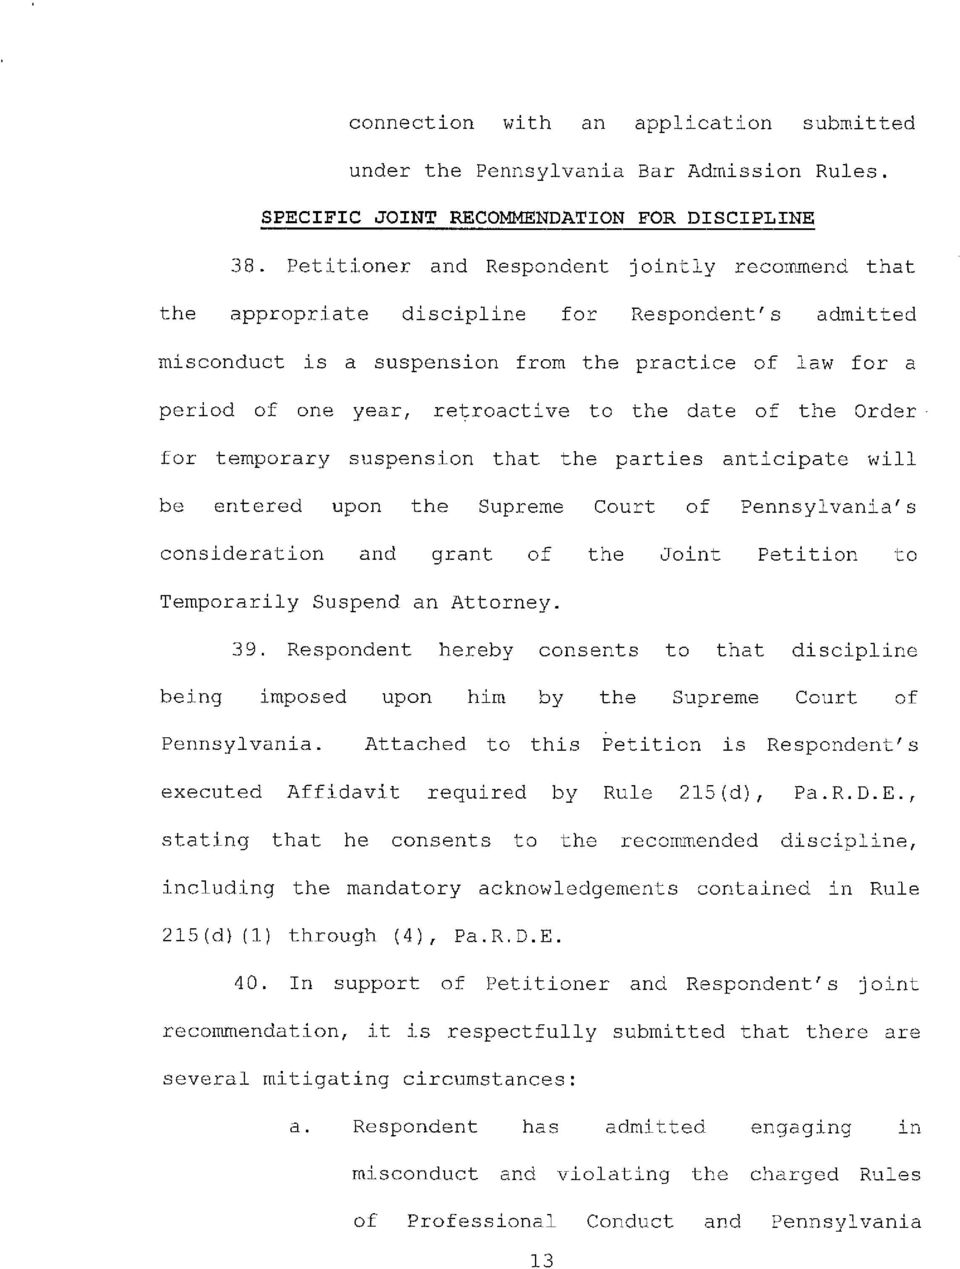 date of the Order for temporary suspension that the parties anticipate will be entered upon the Supreme Court of Pennsylvania's consideration and grant of the Joint Petition to Temporarily Suspend an